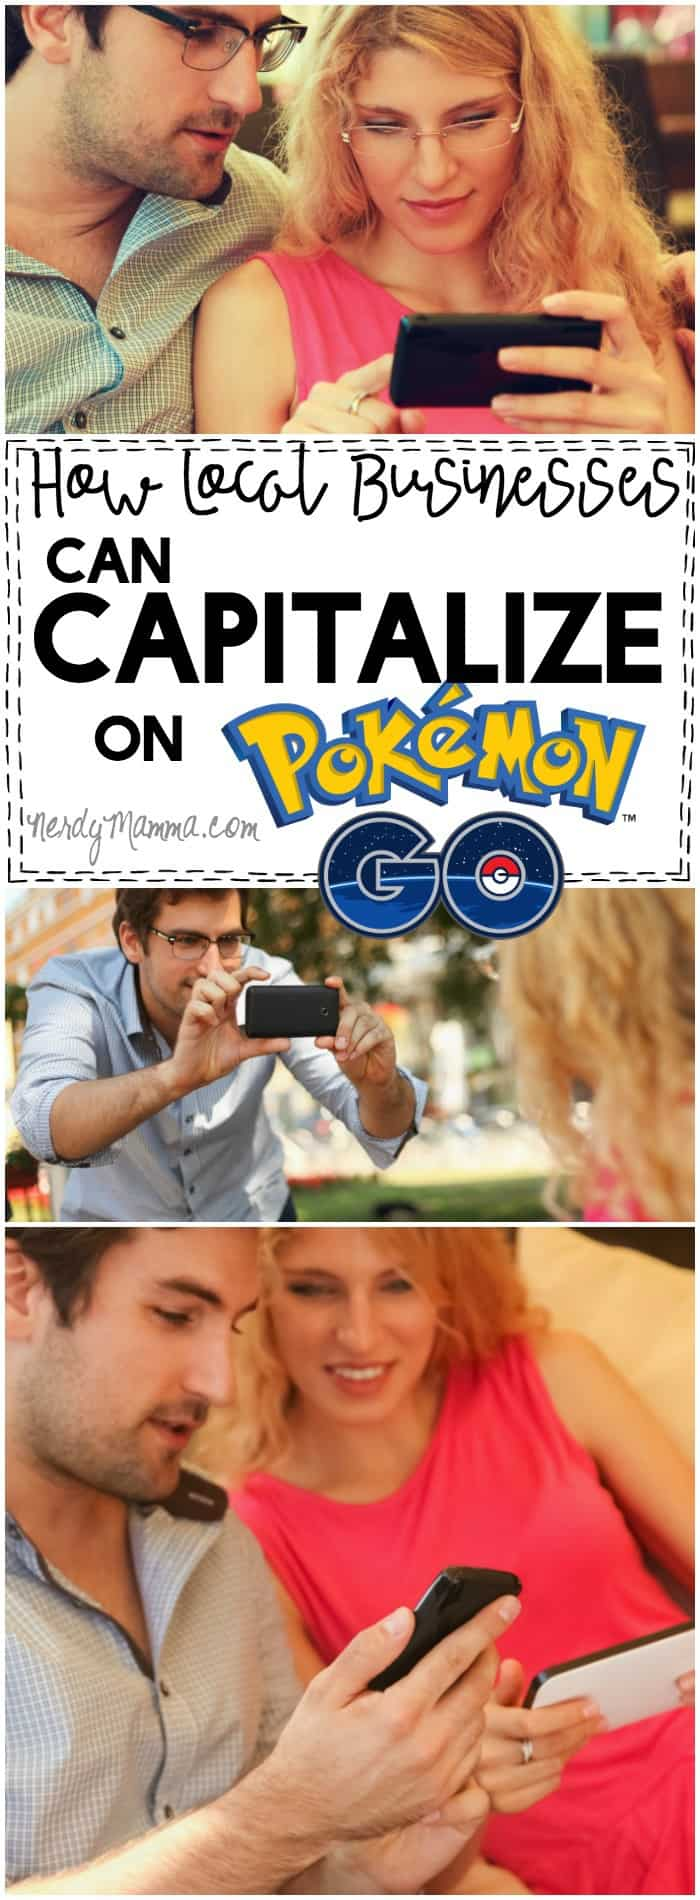 This is a great set of ideas to help local businesses use Pokemon GO and help the businesses get more customers. LOVE!